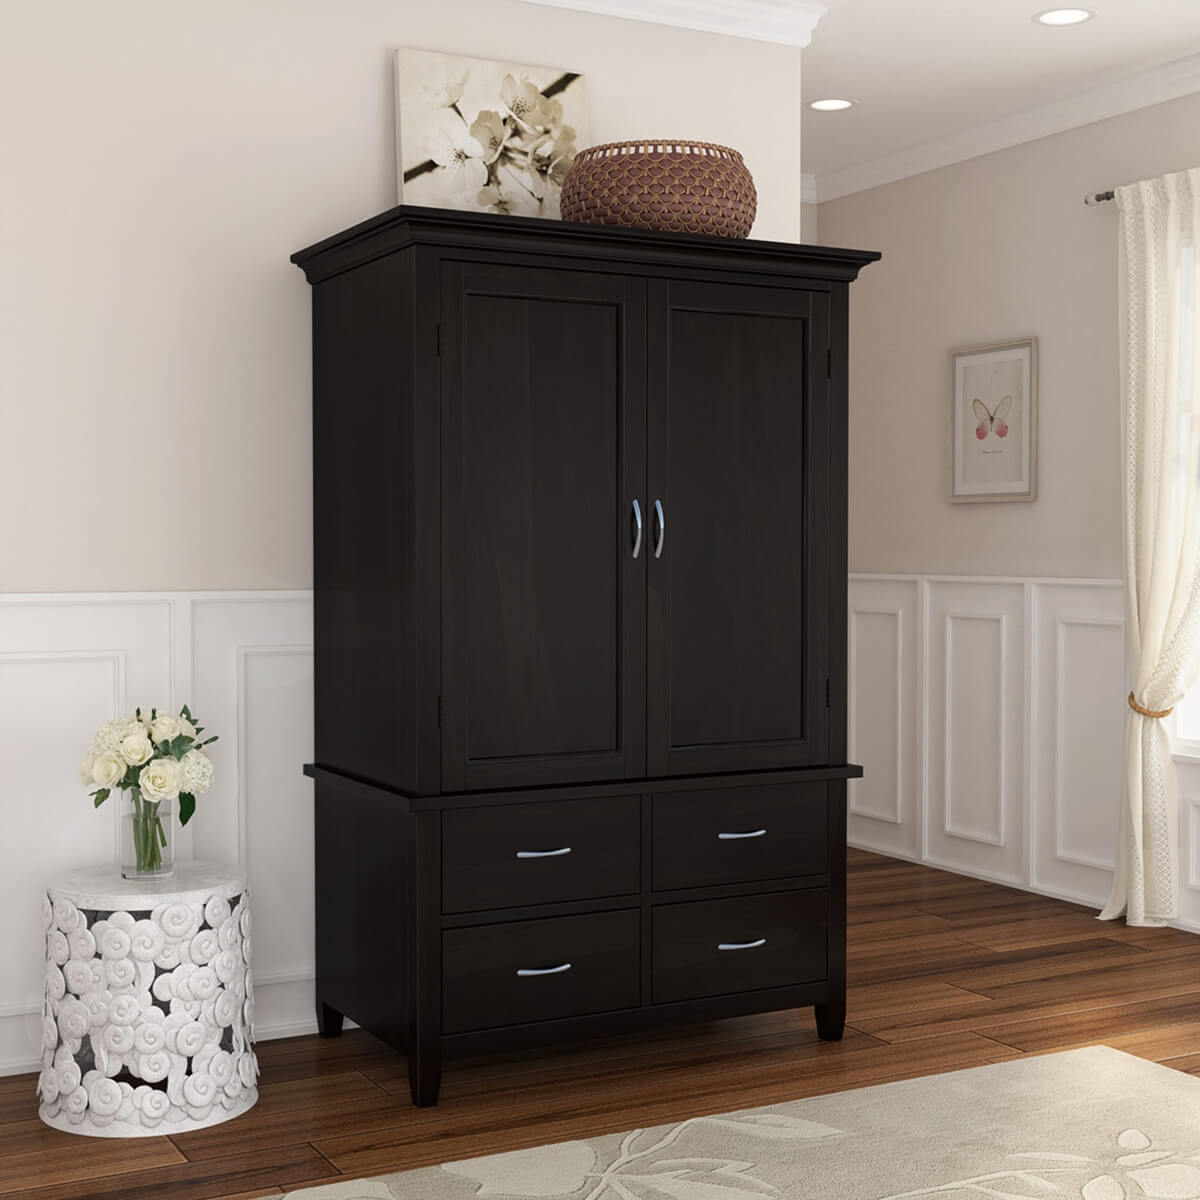 Magaluf Rustic Solid Wood Large Bedroom Armoire Wardrobe With Drawers